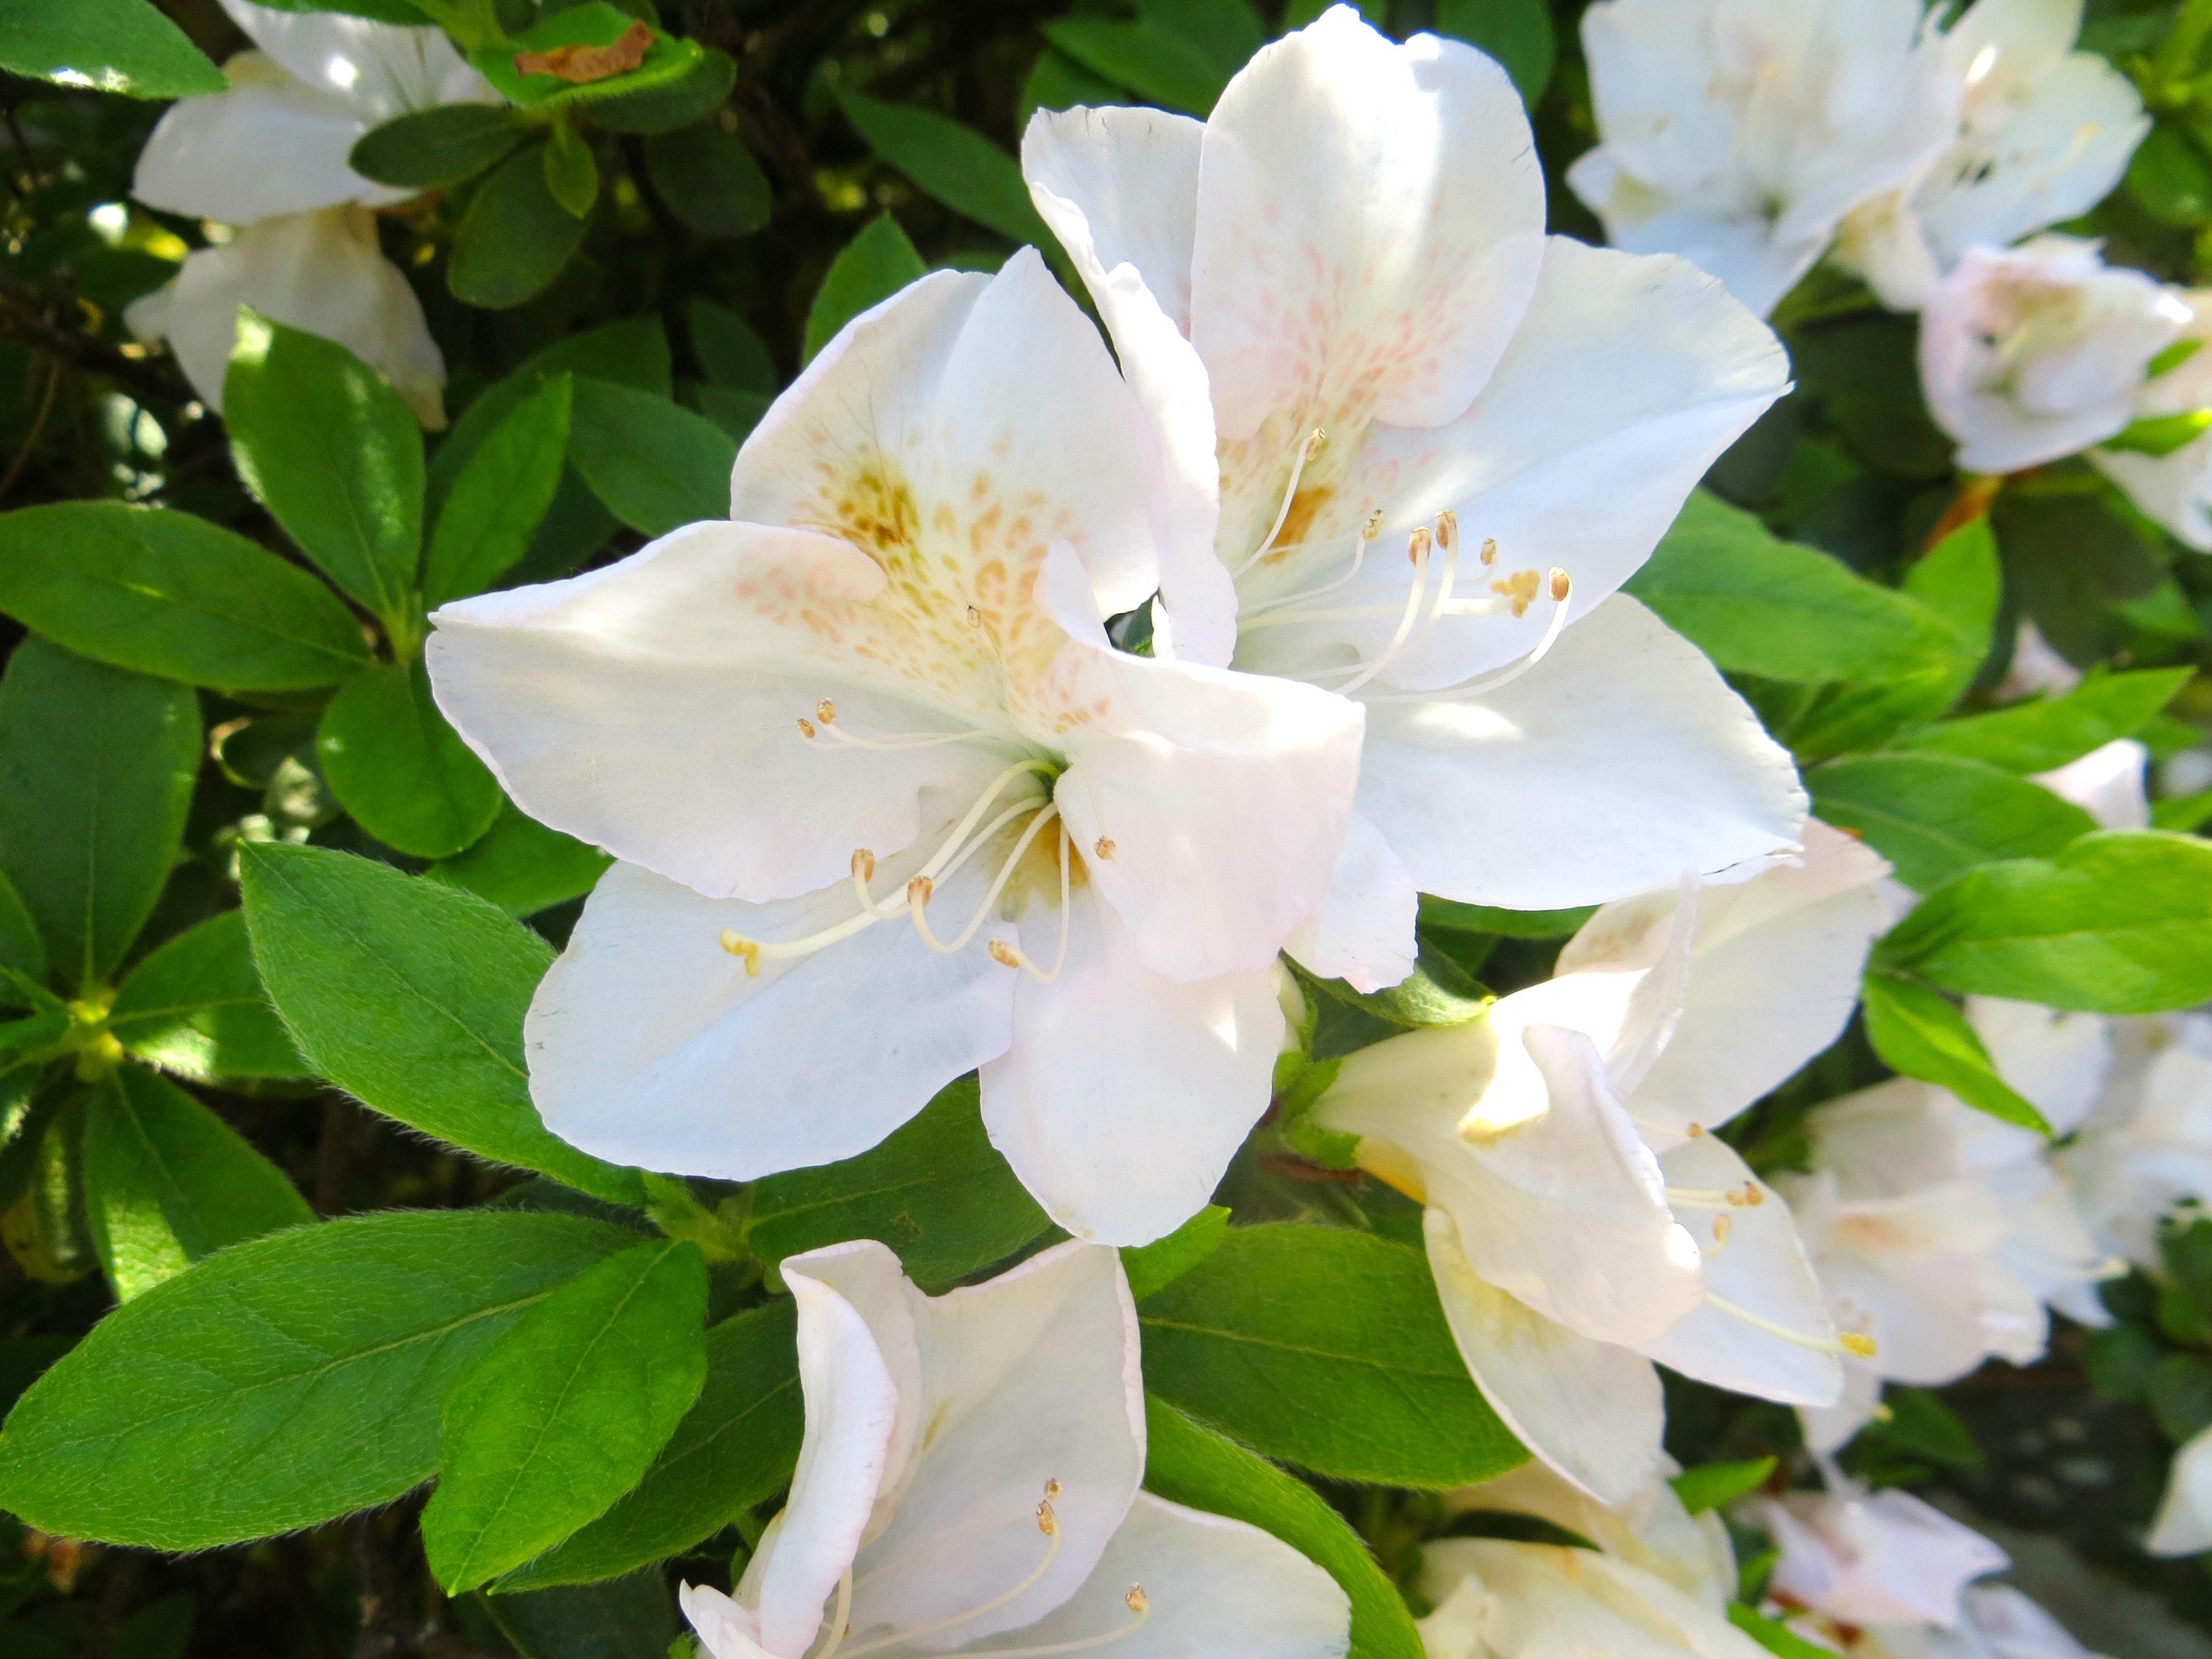 Rhododendron azalea white by e roji gate in area w sjg bloom sjg 51314 white azalea s of roji e gate mightylinksfo Images